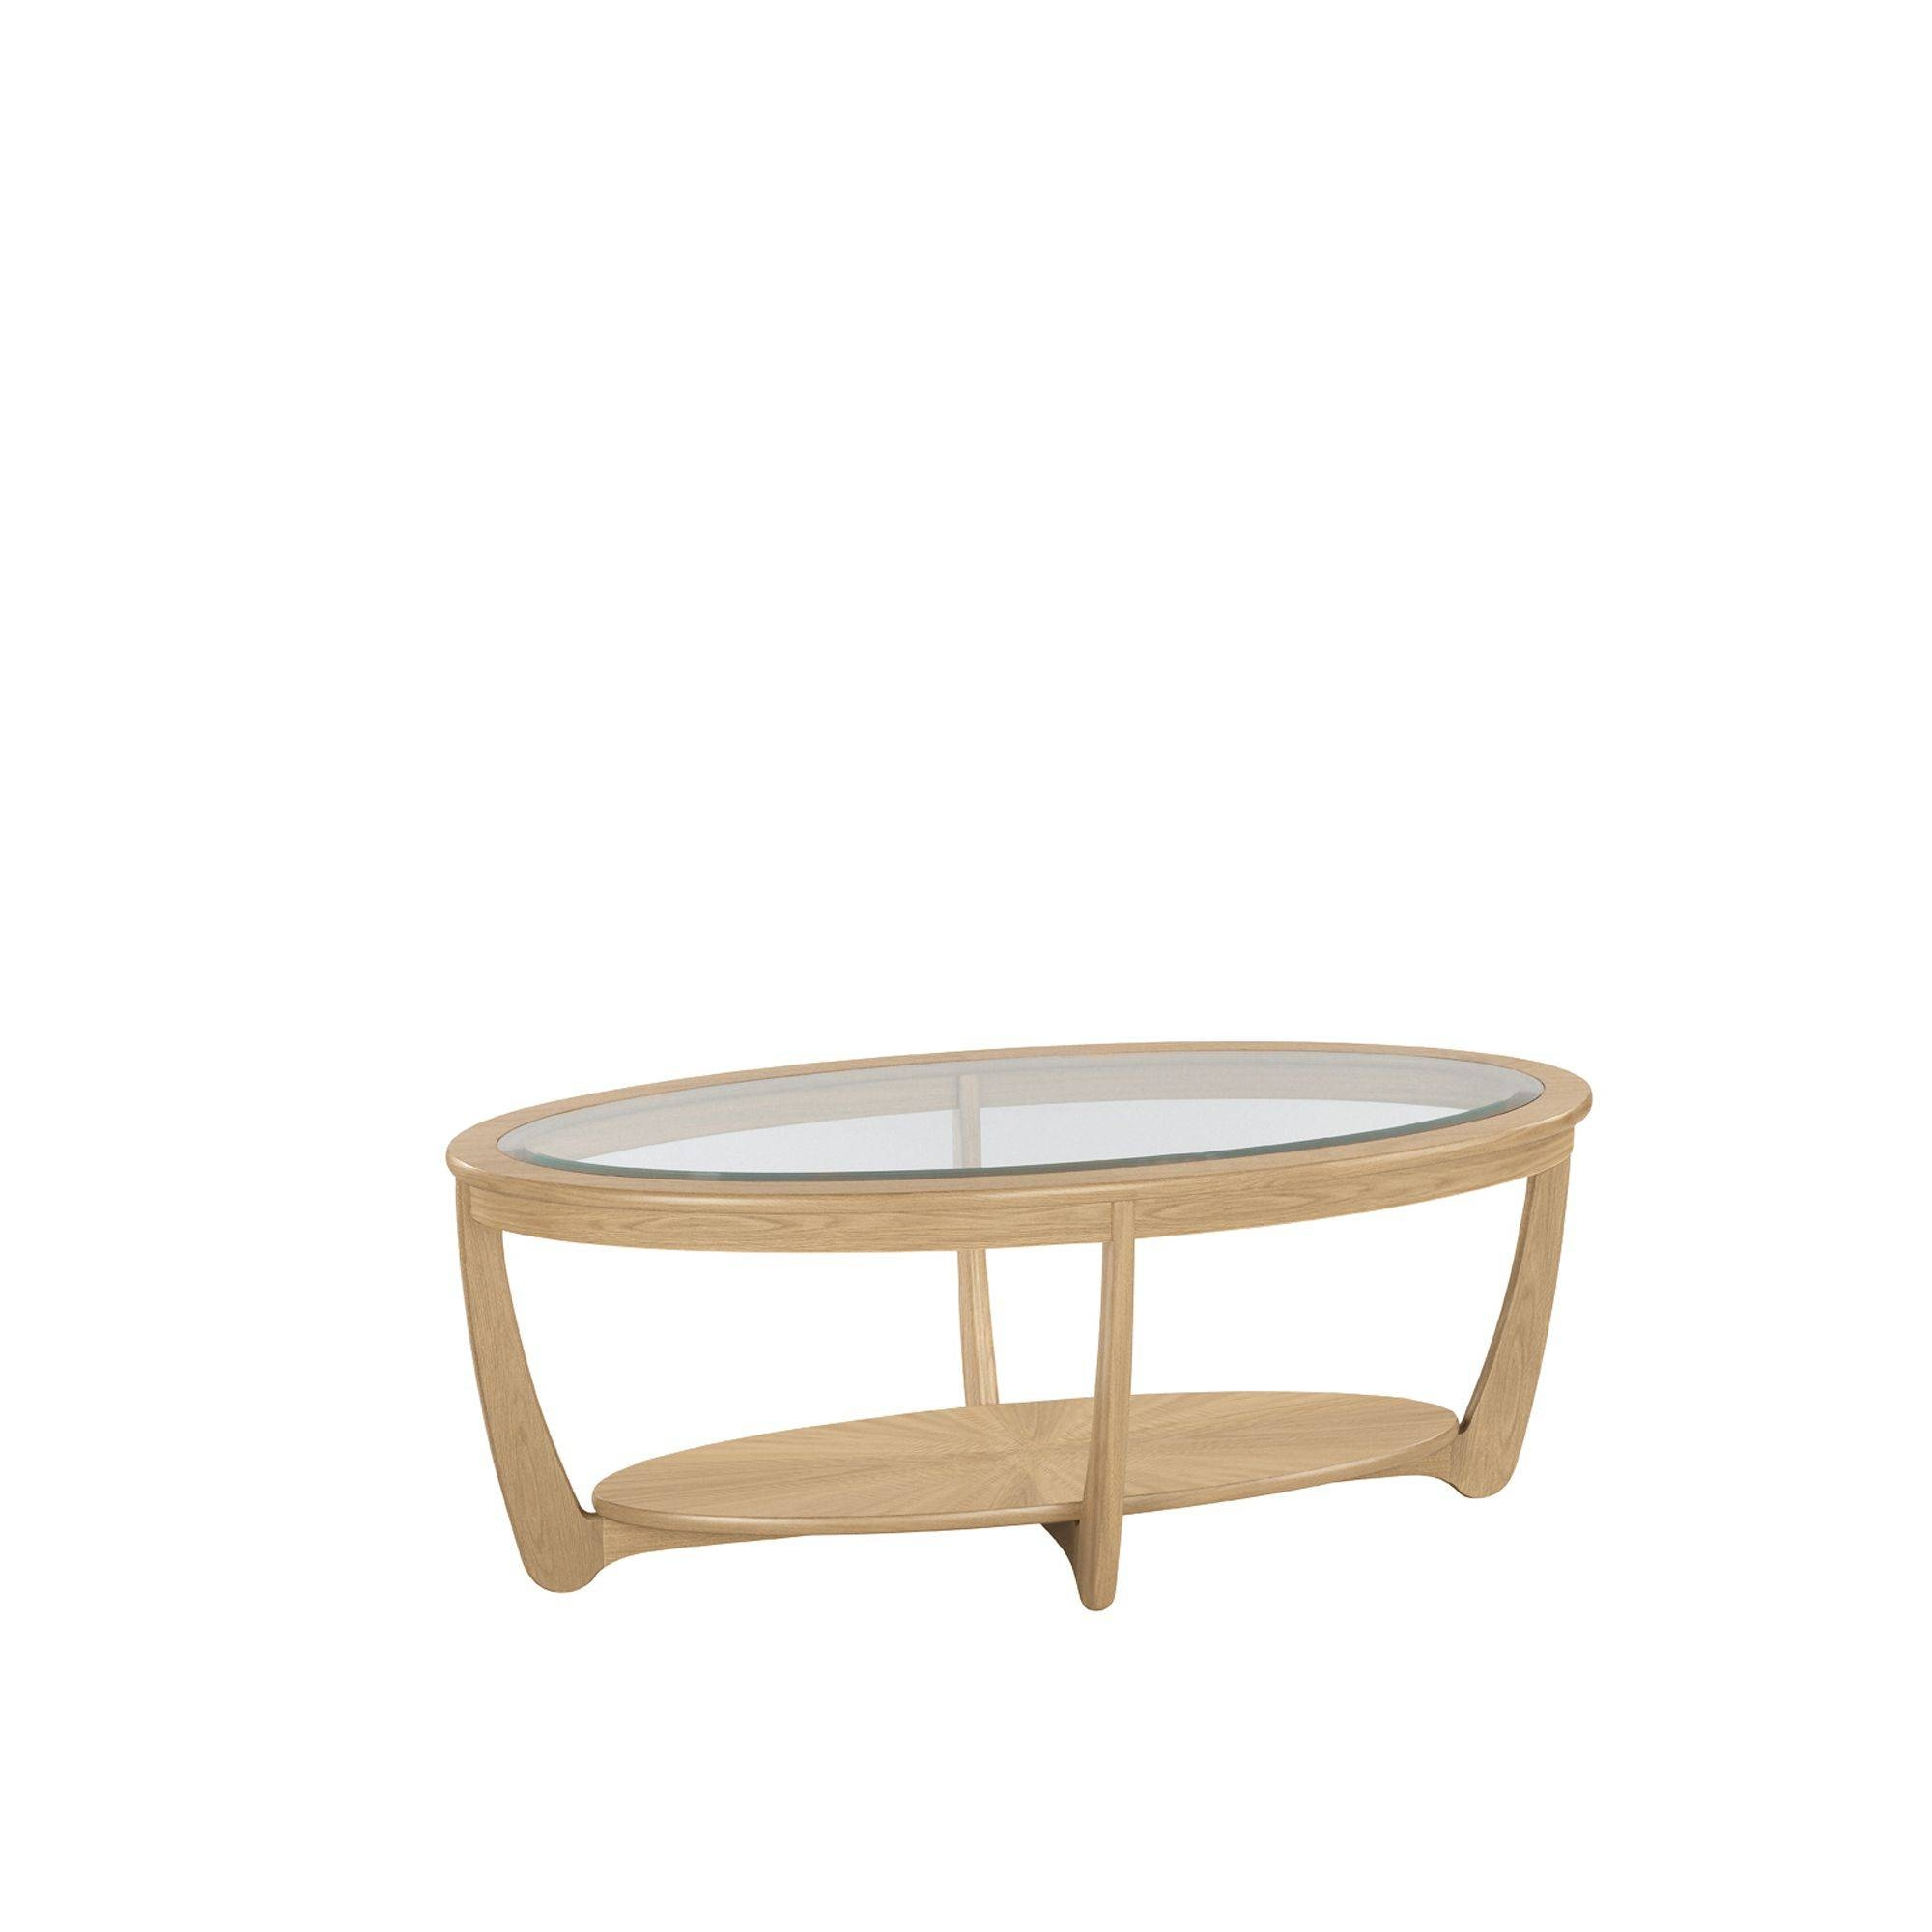 15 Best Collection of Oak Coffee Table With Glass Top